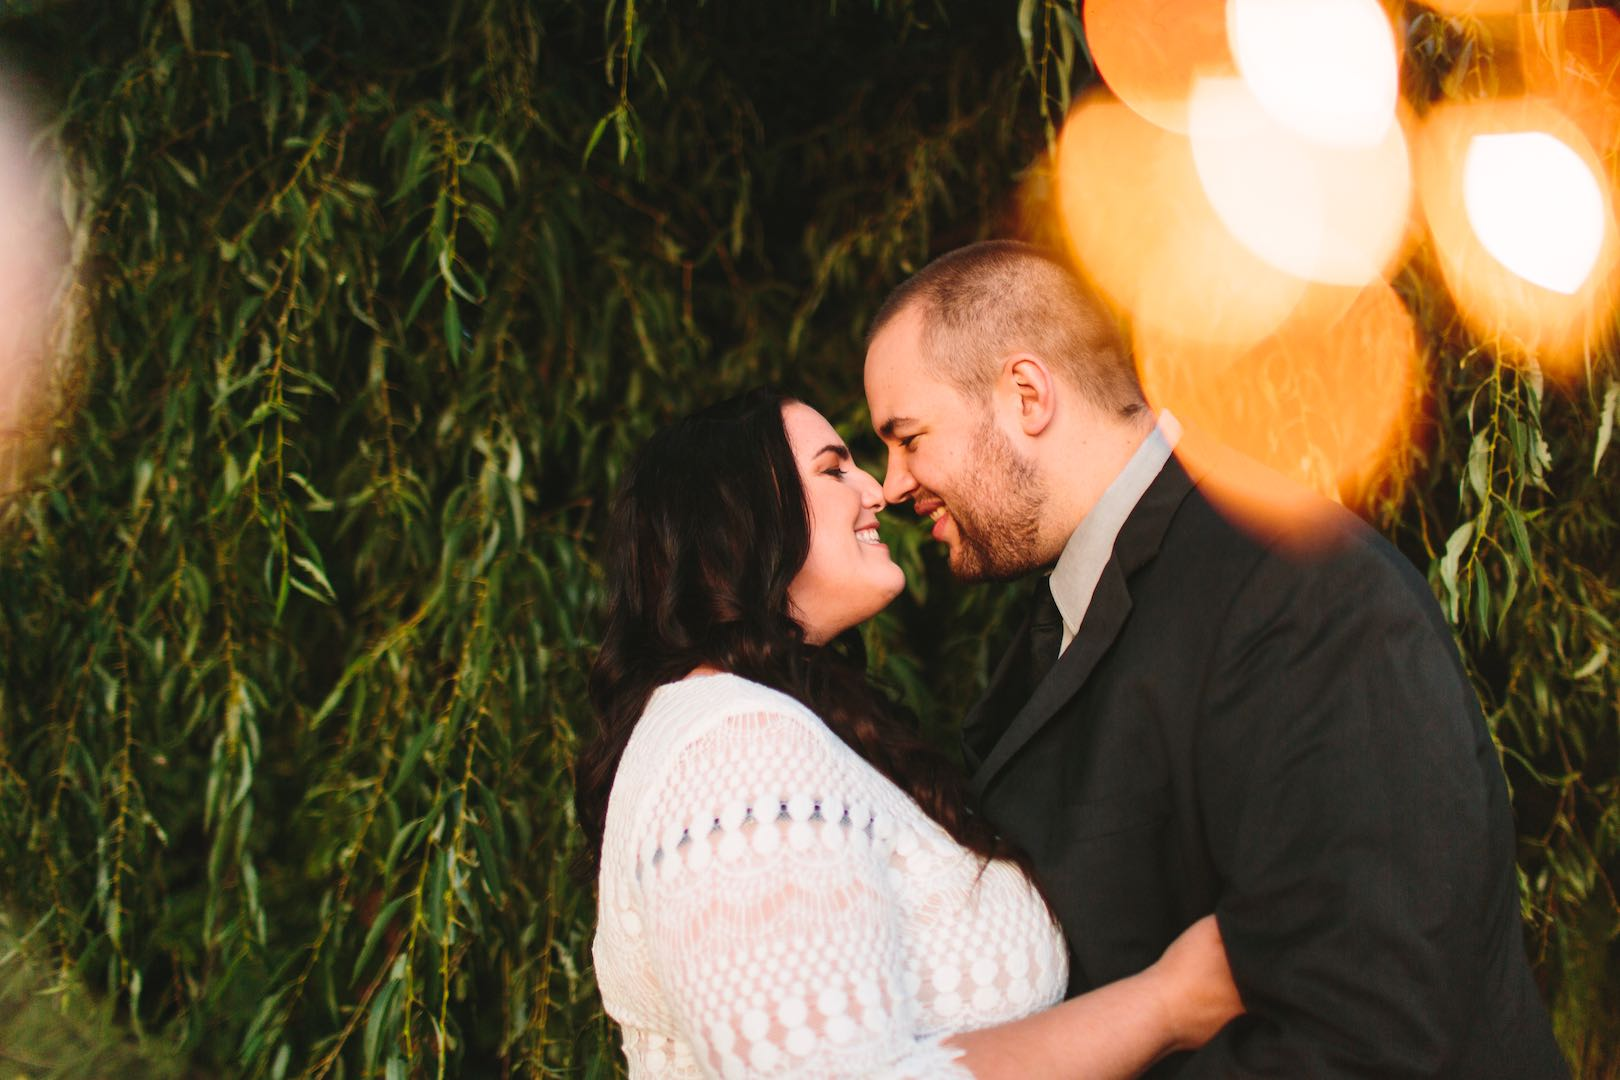 Kathleen & Luke | Engagement Photography Session